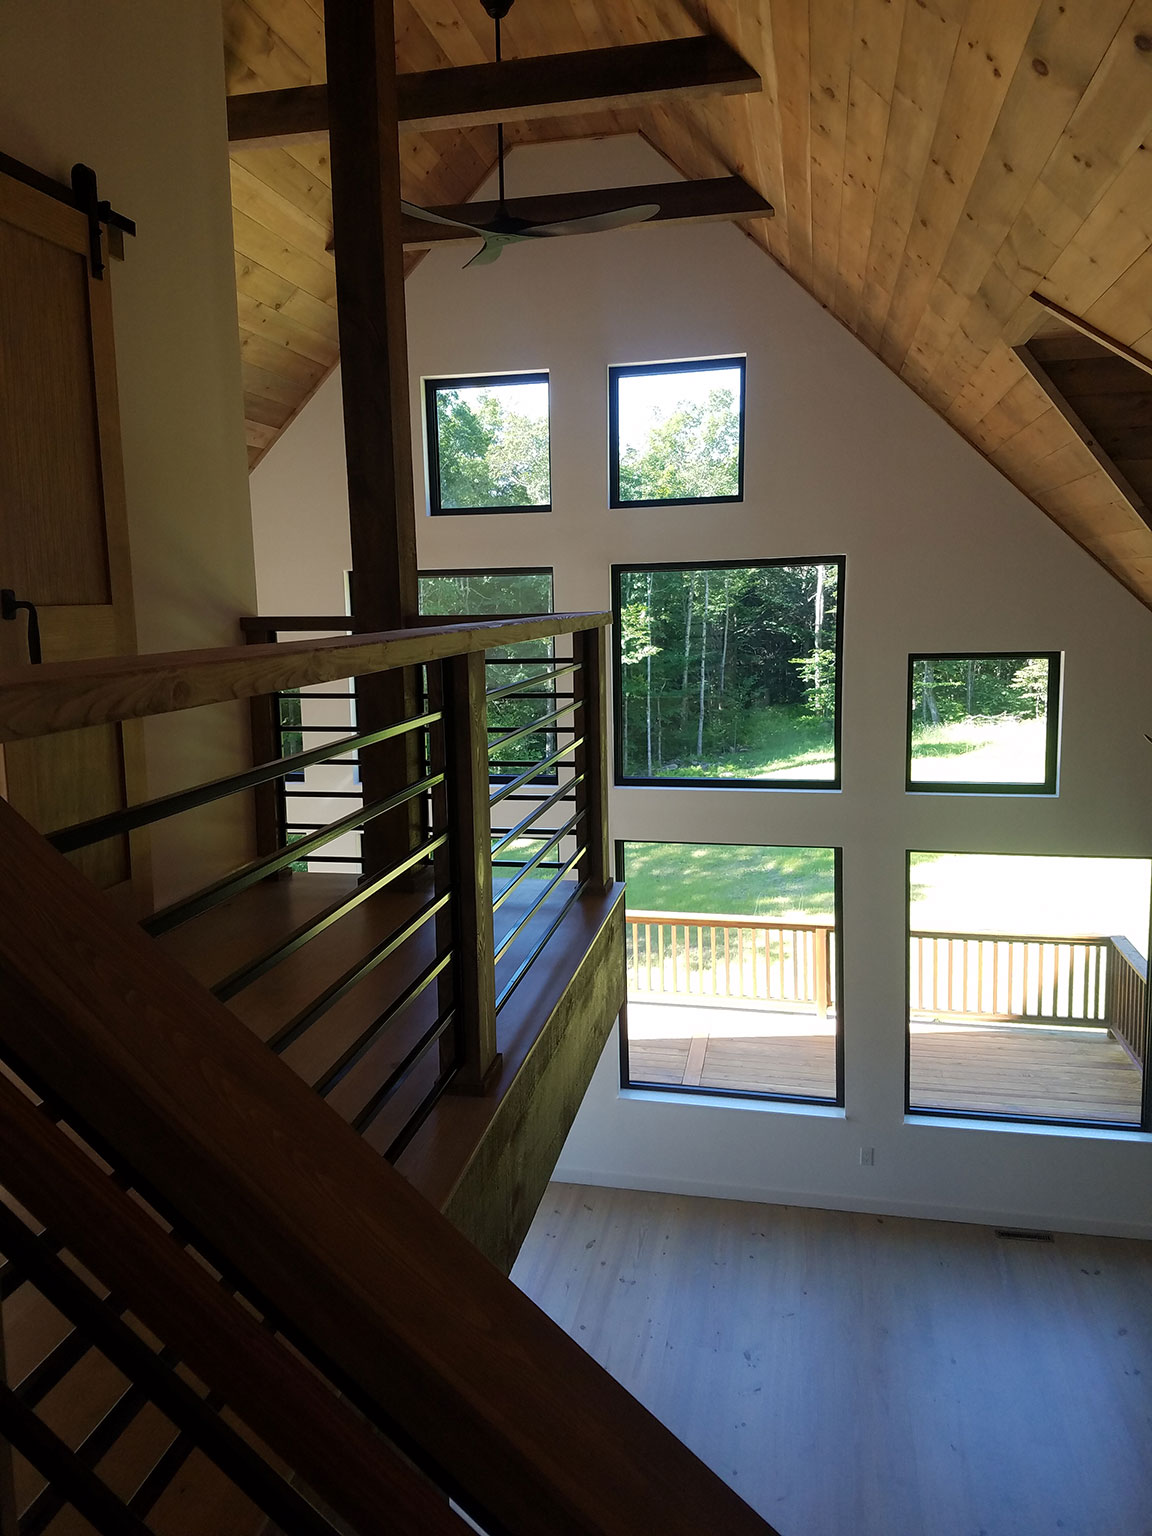 2nd Floor: Looking Out